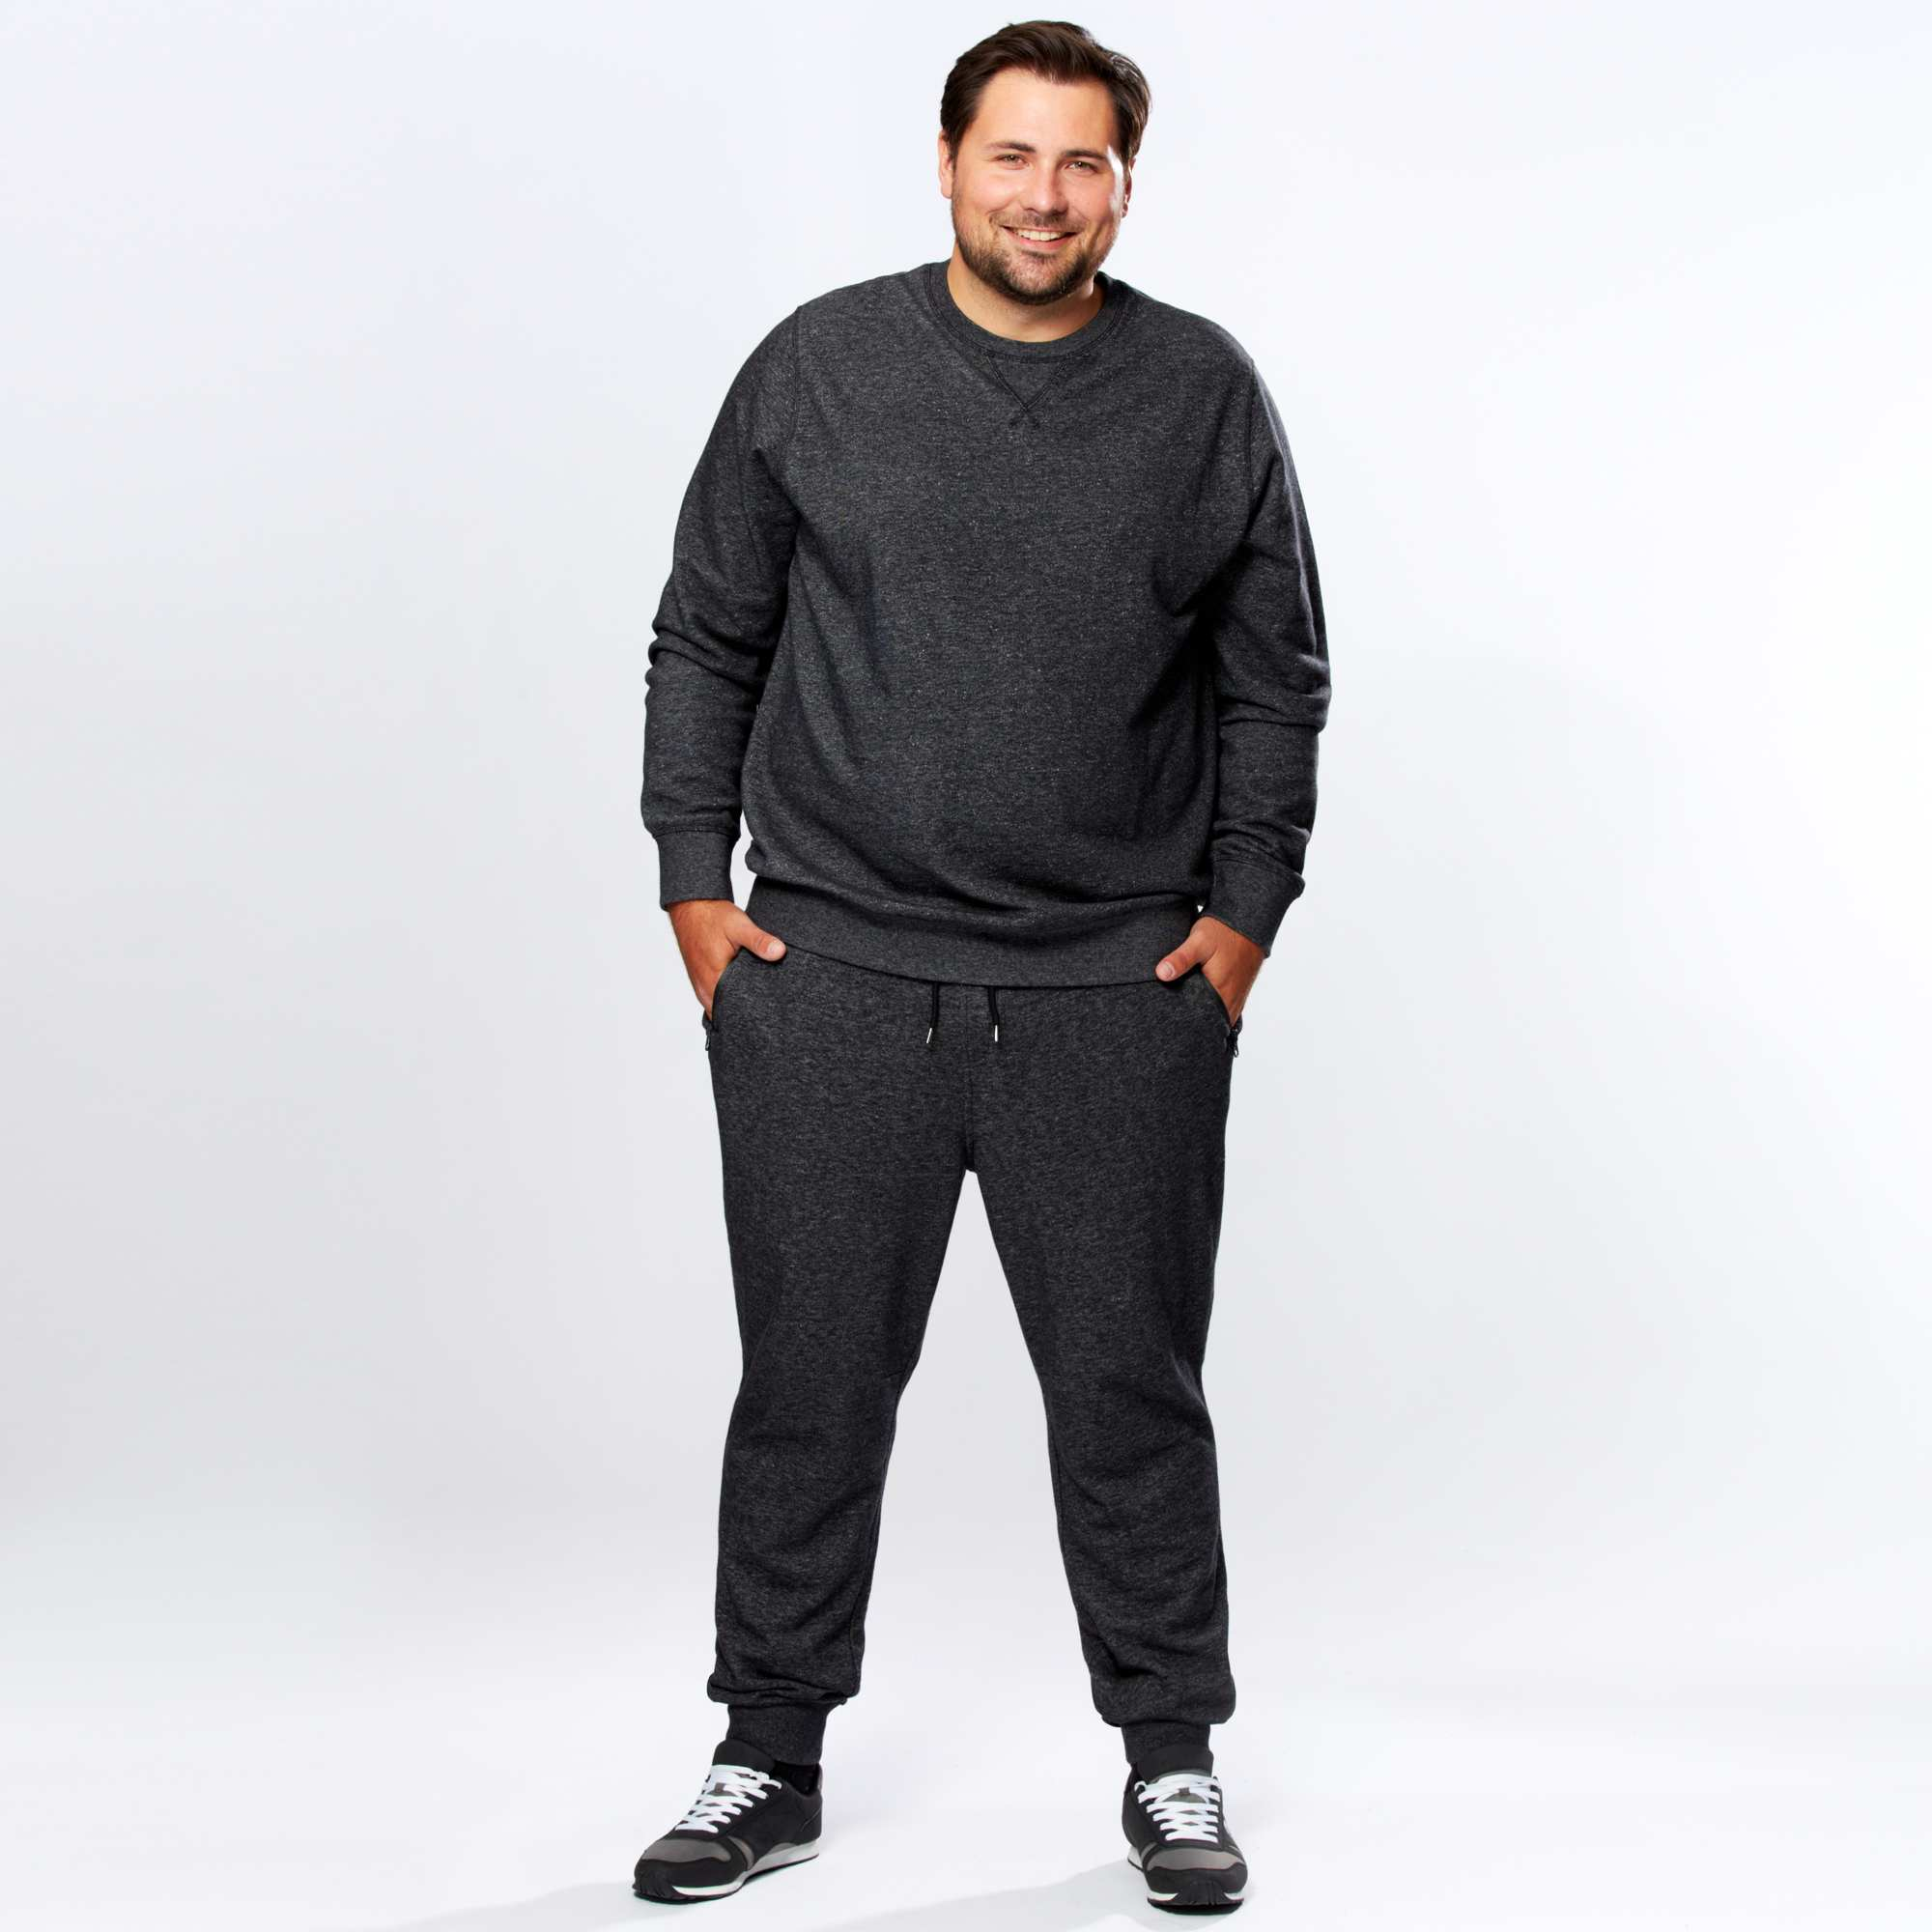 grande taille homme